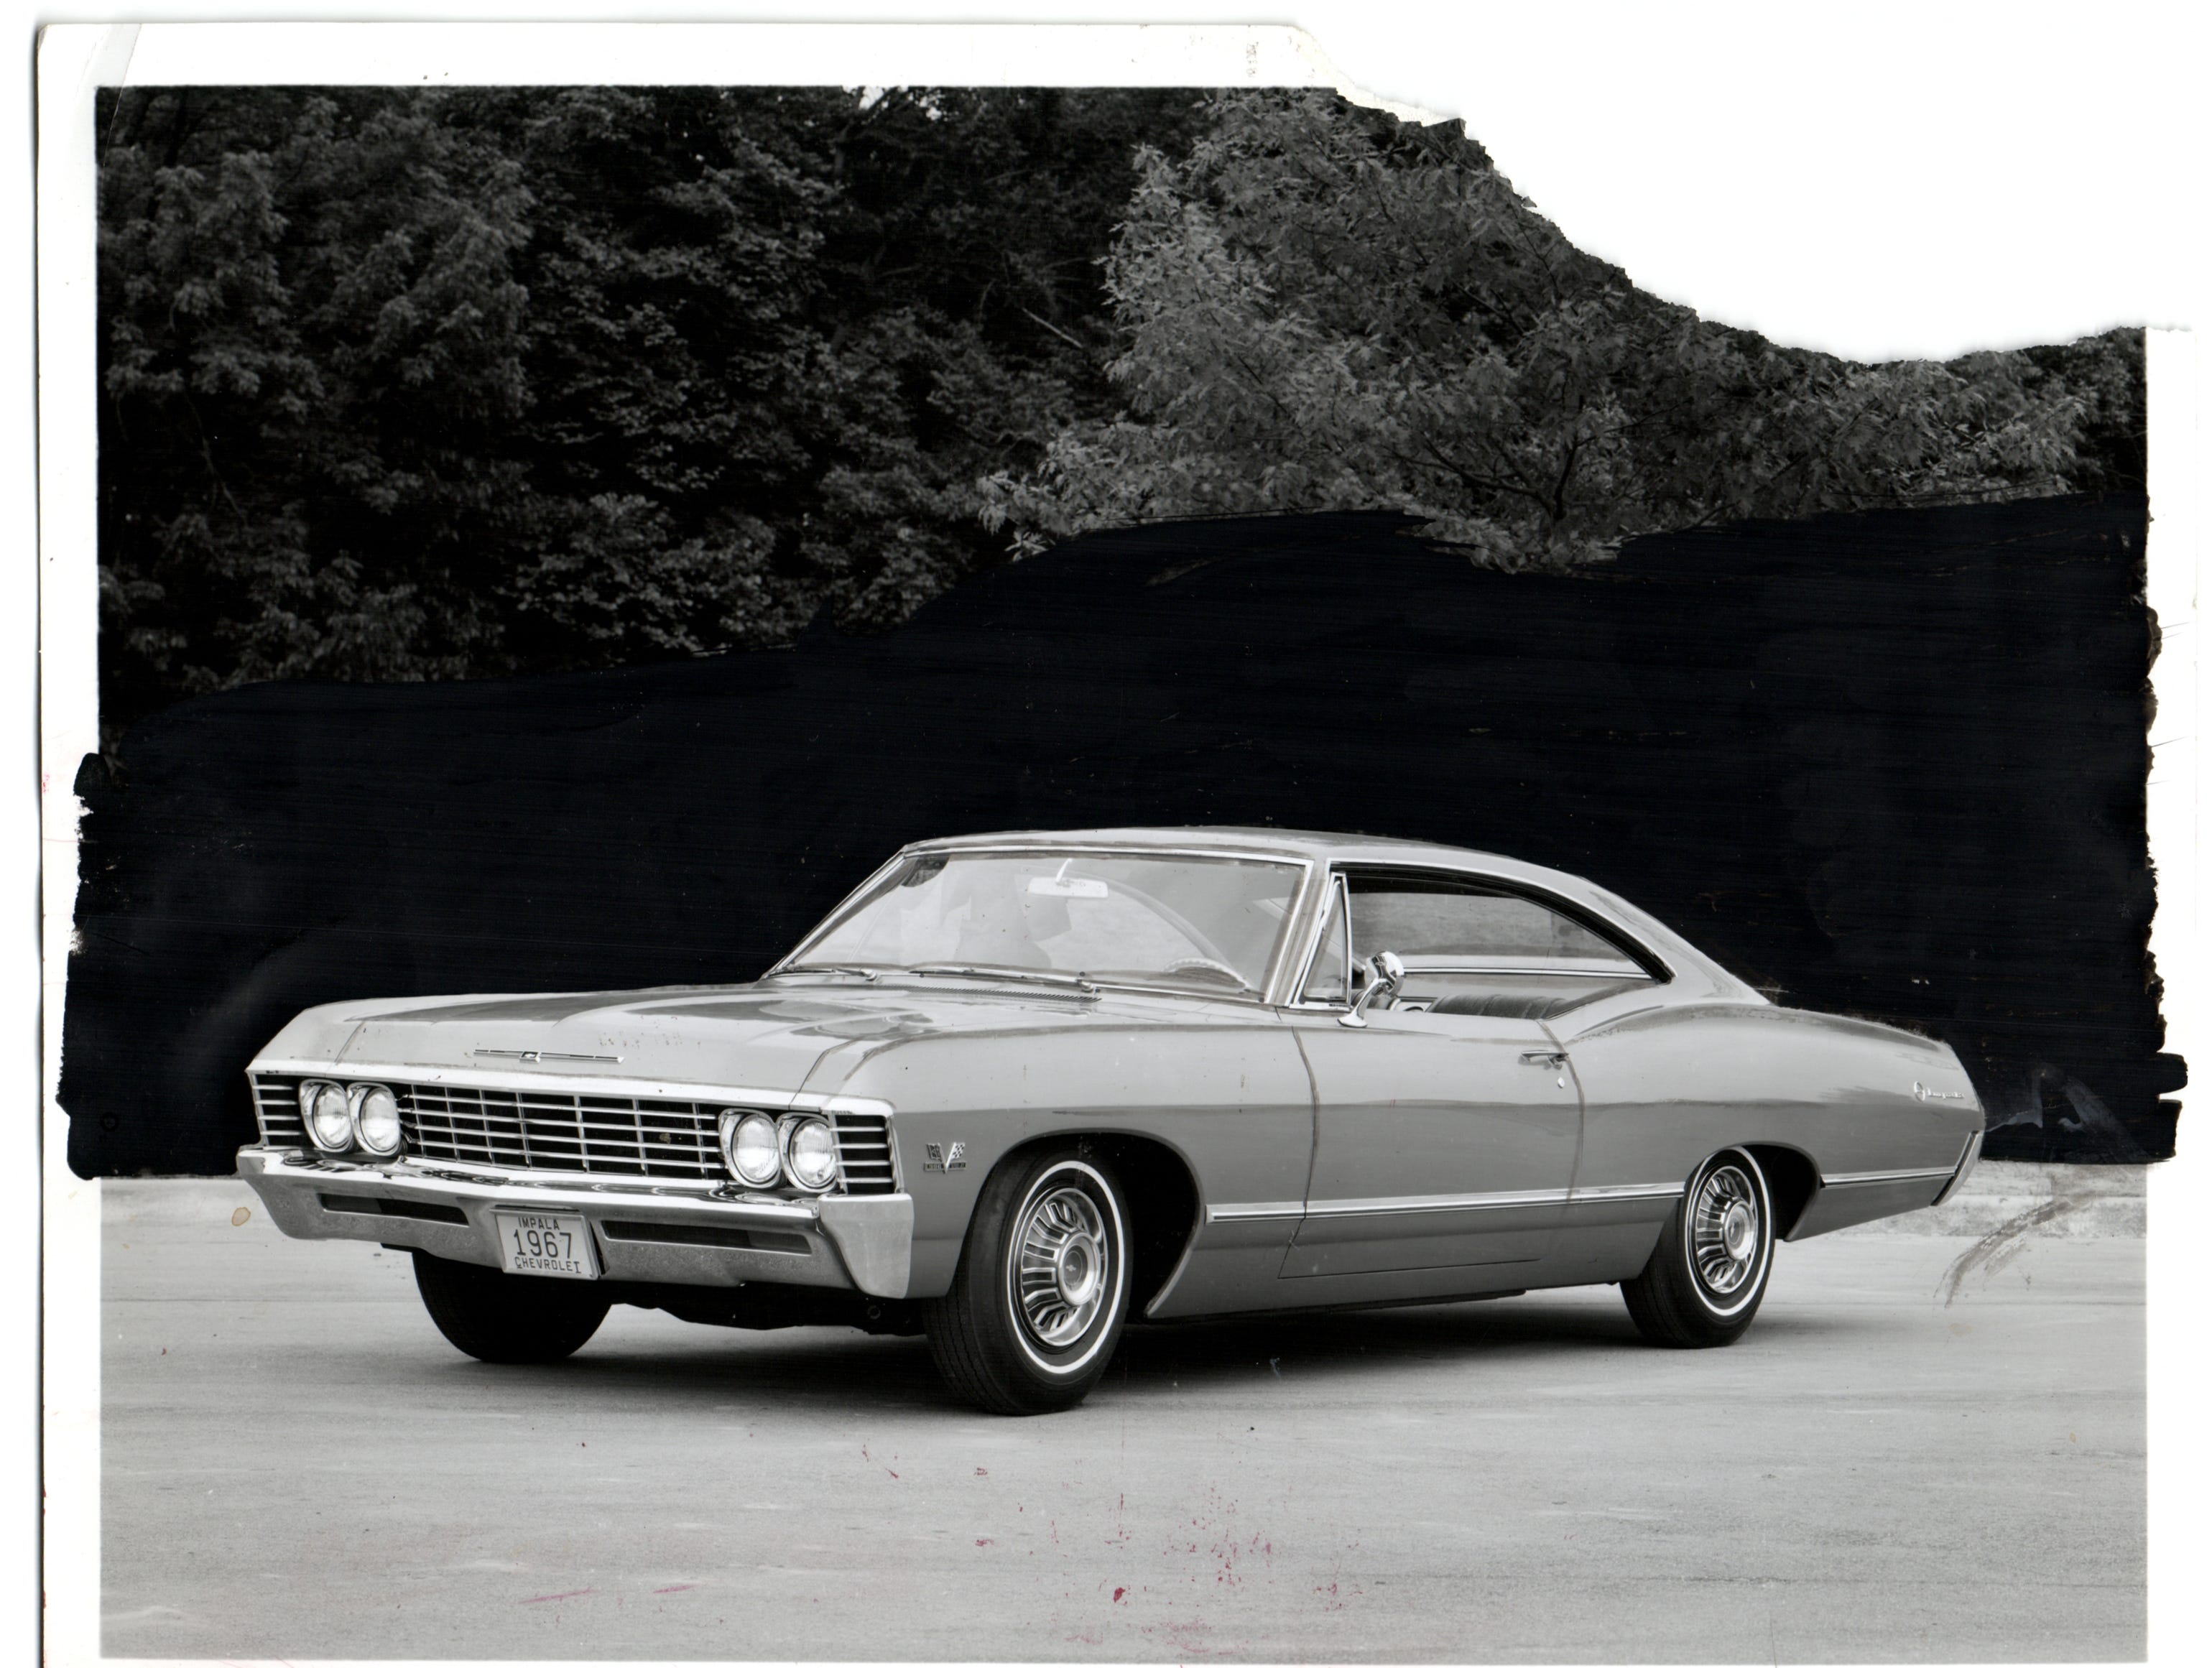 1967 Chevy Impala Sport Coupe.